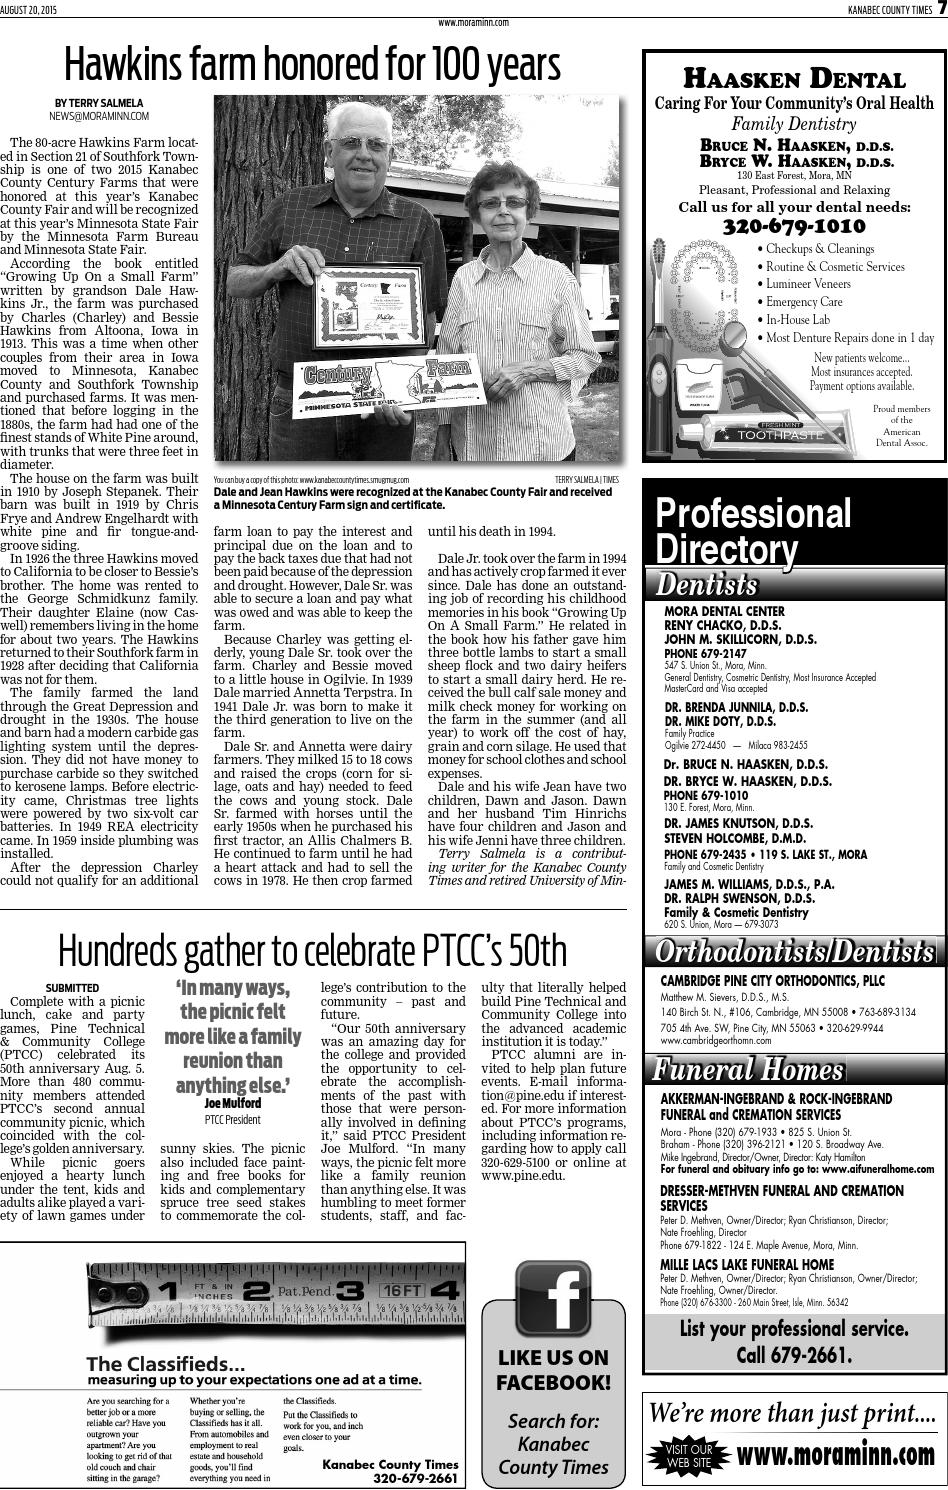 E edition August 21, 2015 by Kanabec County Times - issuu